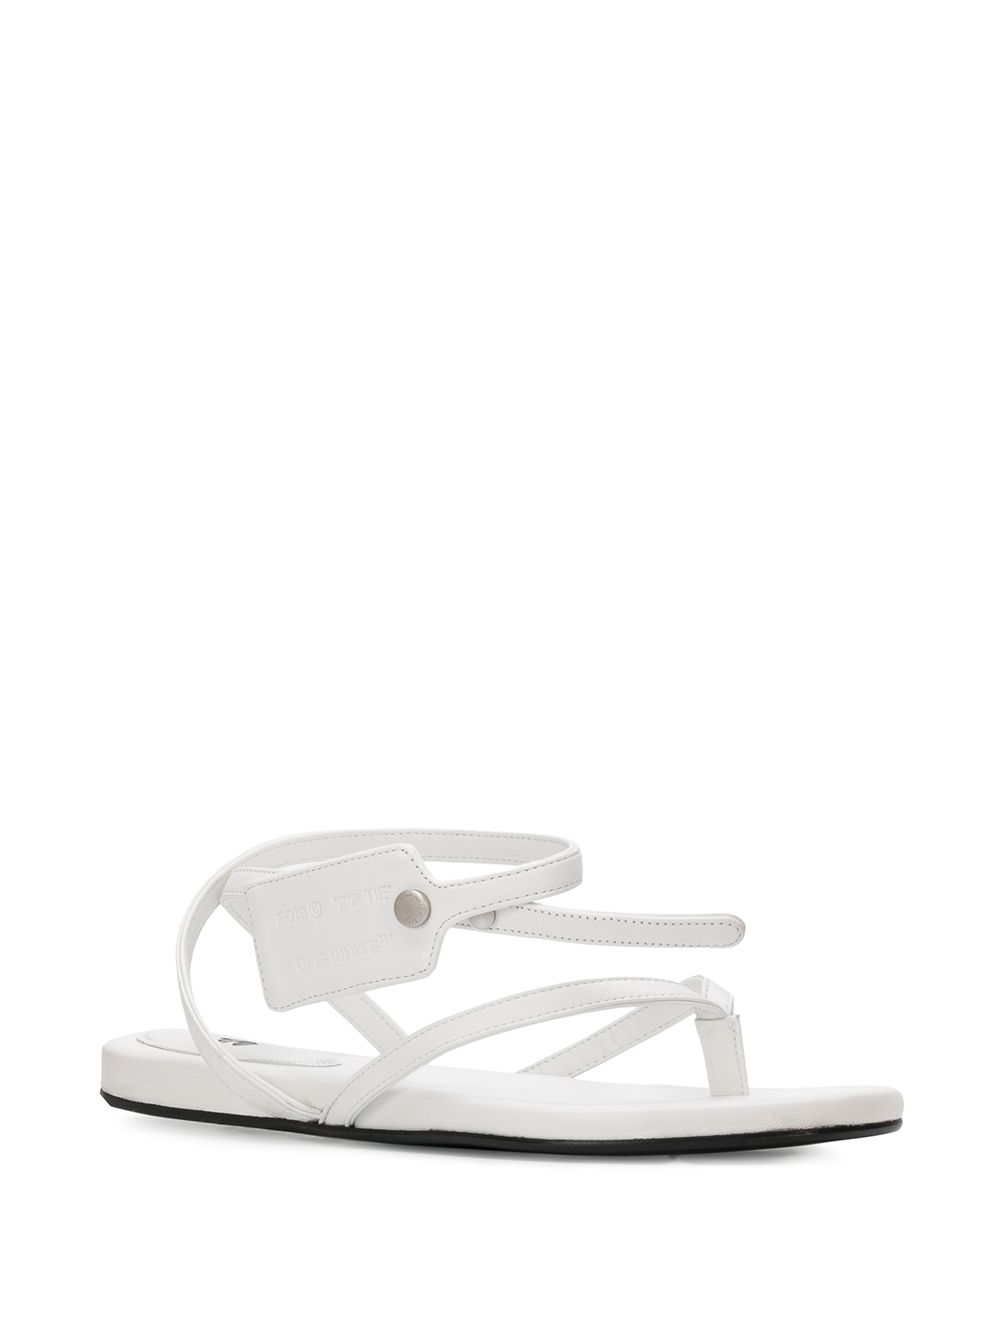 OFF-WHITE zip-tie tag strappy sandals white